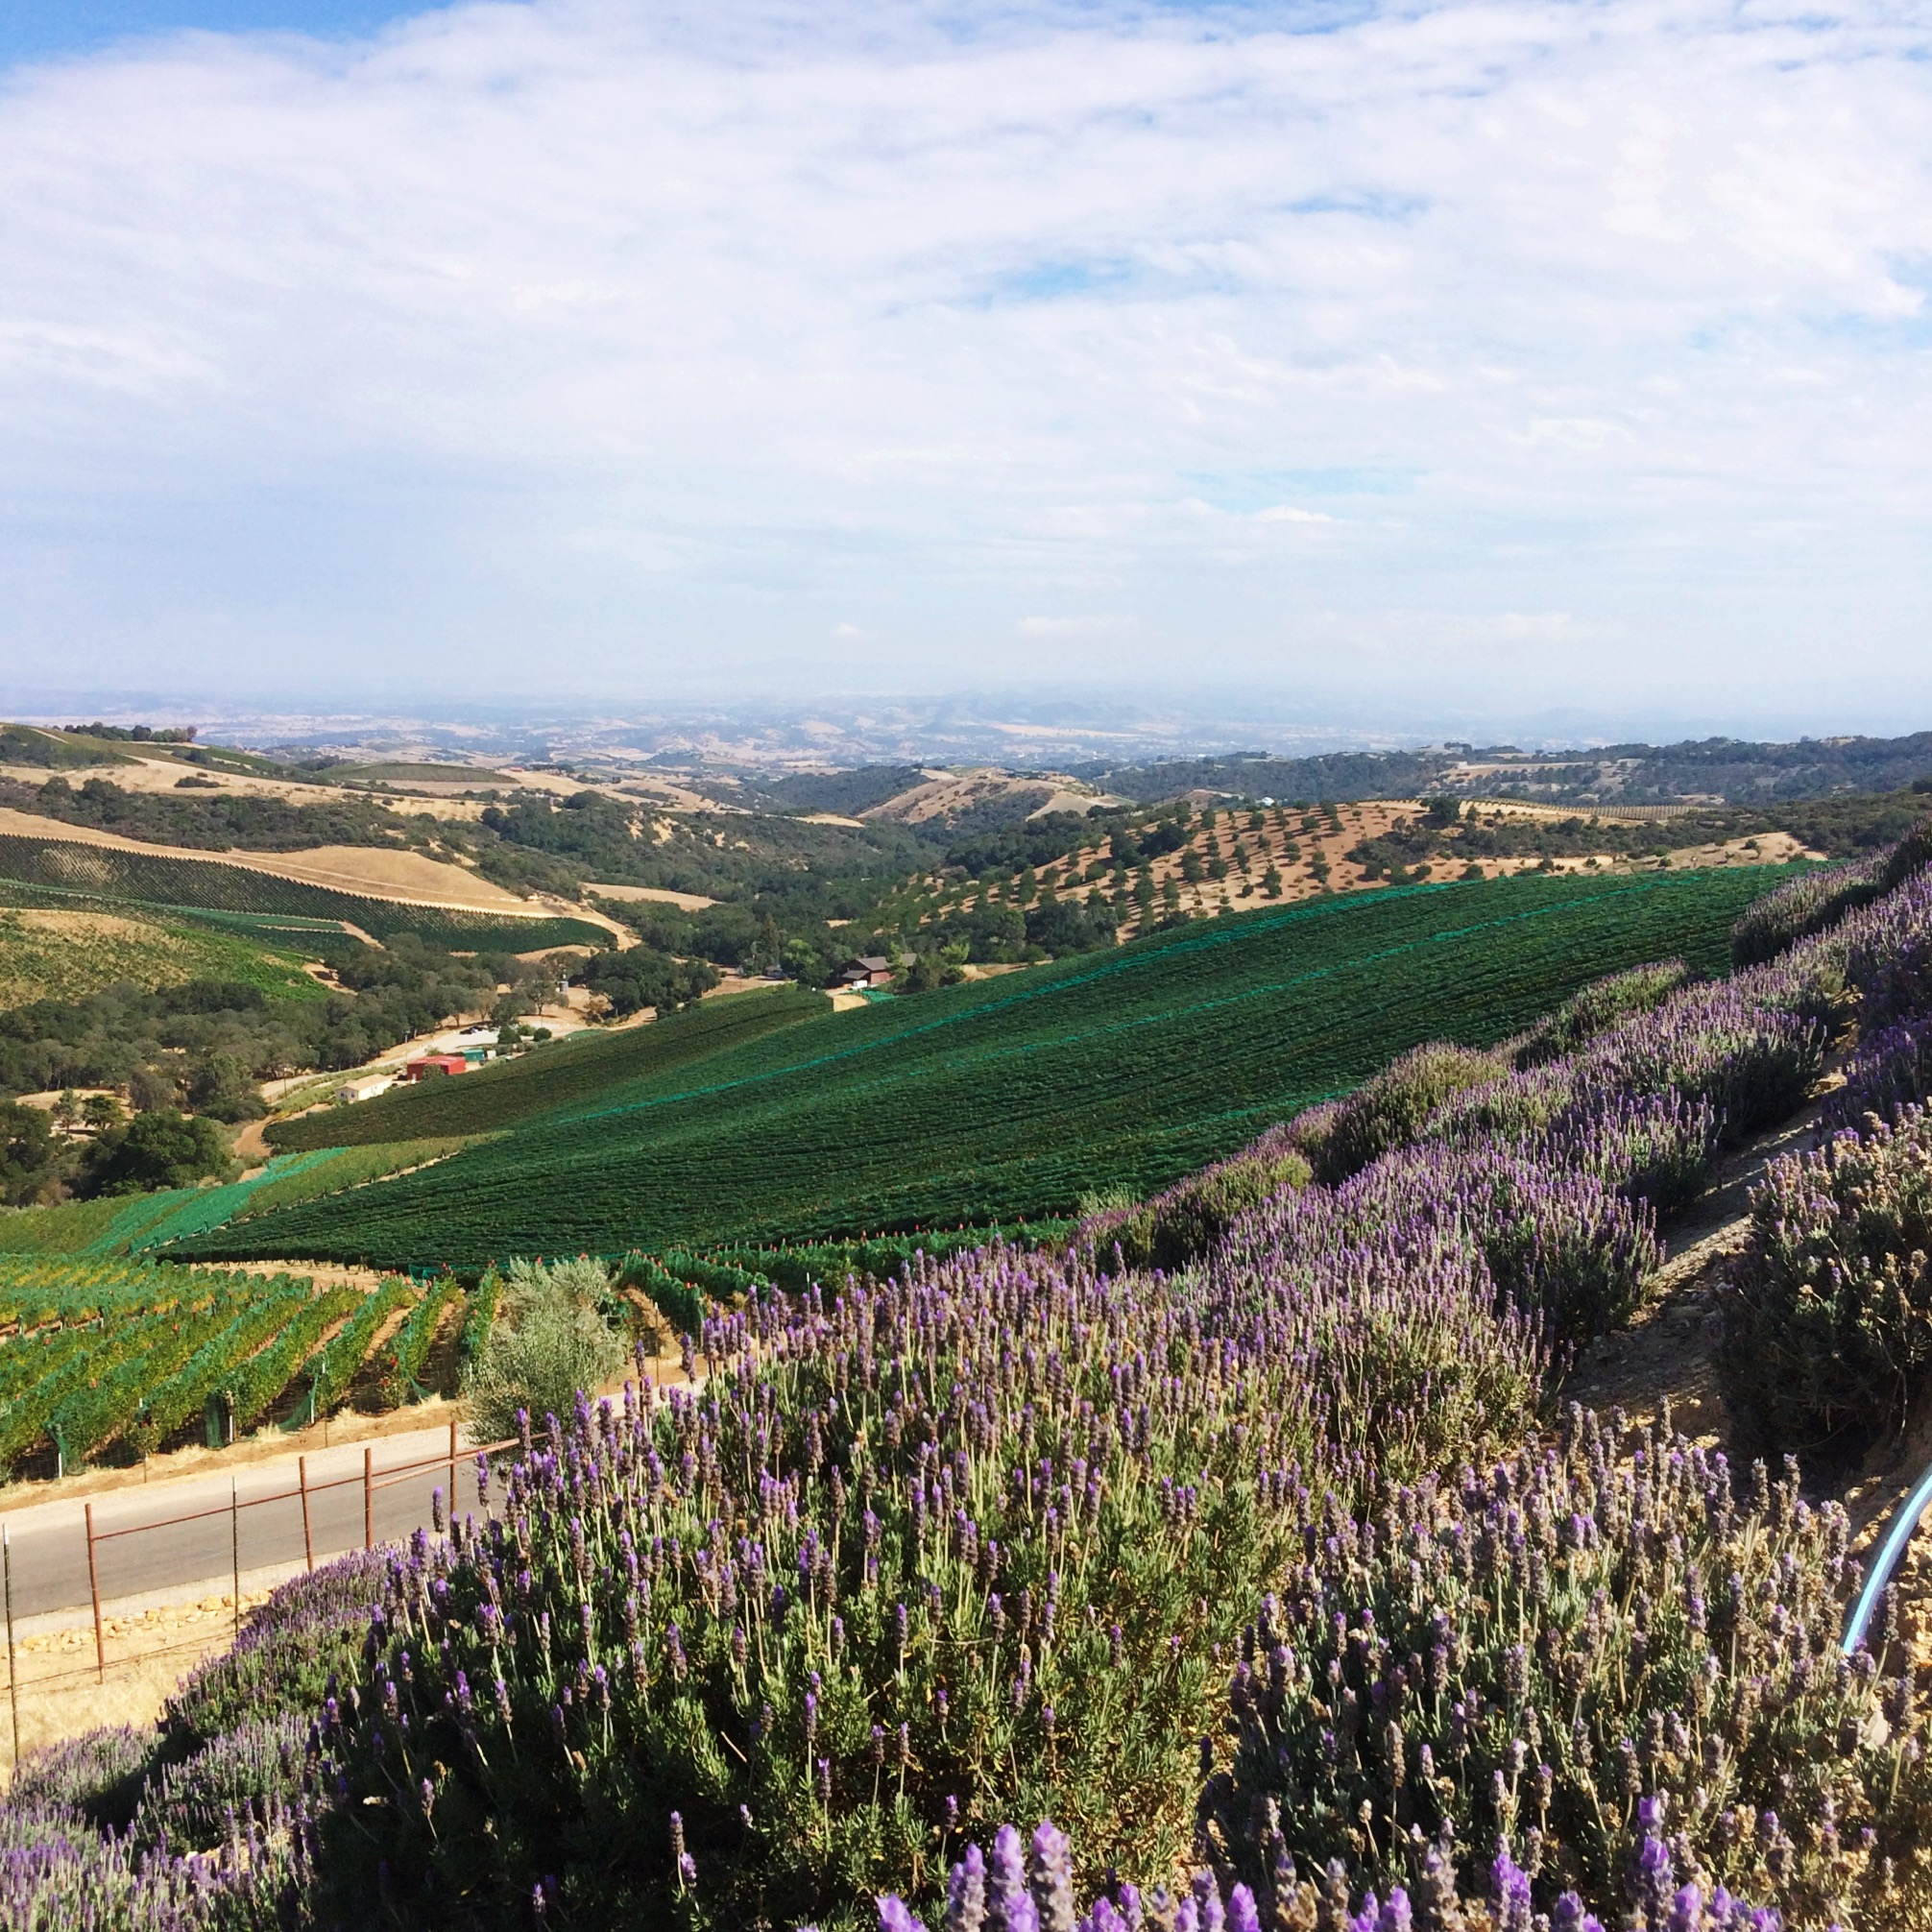 The Prettiest views came courtesy of Daou Winery. I could have sat outside in their stunning courtyard sipping chardonnay all day.